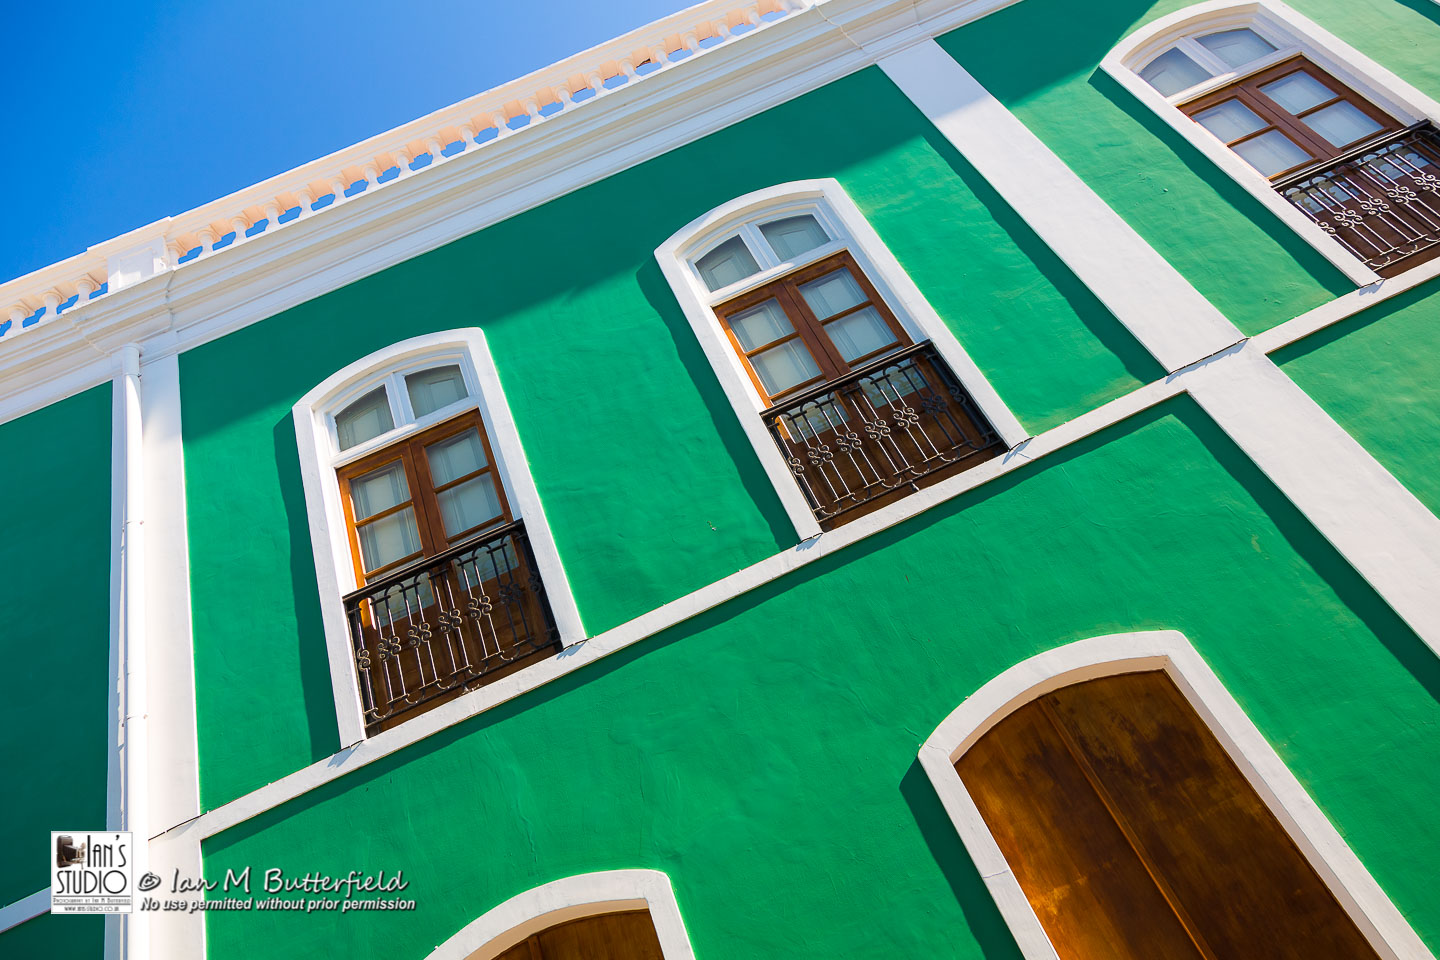 ACADEMY BITE: Lessons from the South America Cruise #12 – A green colonial building